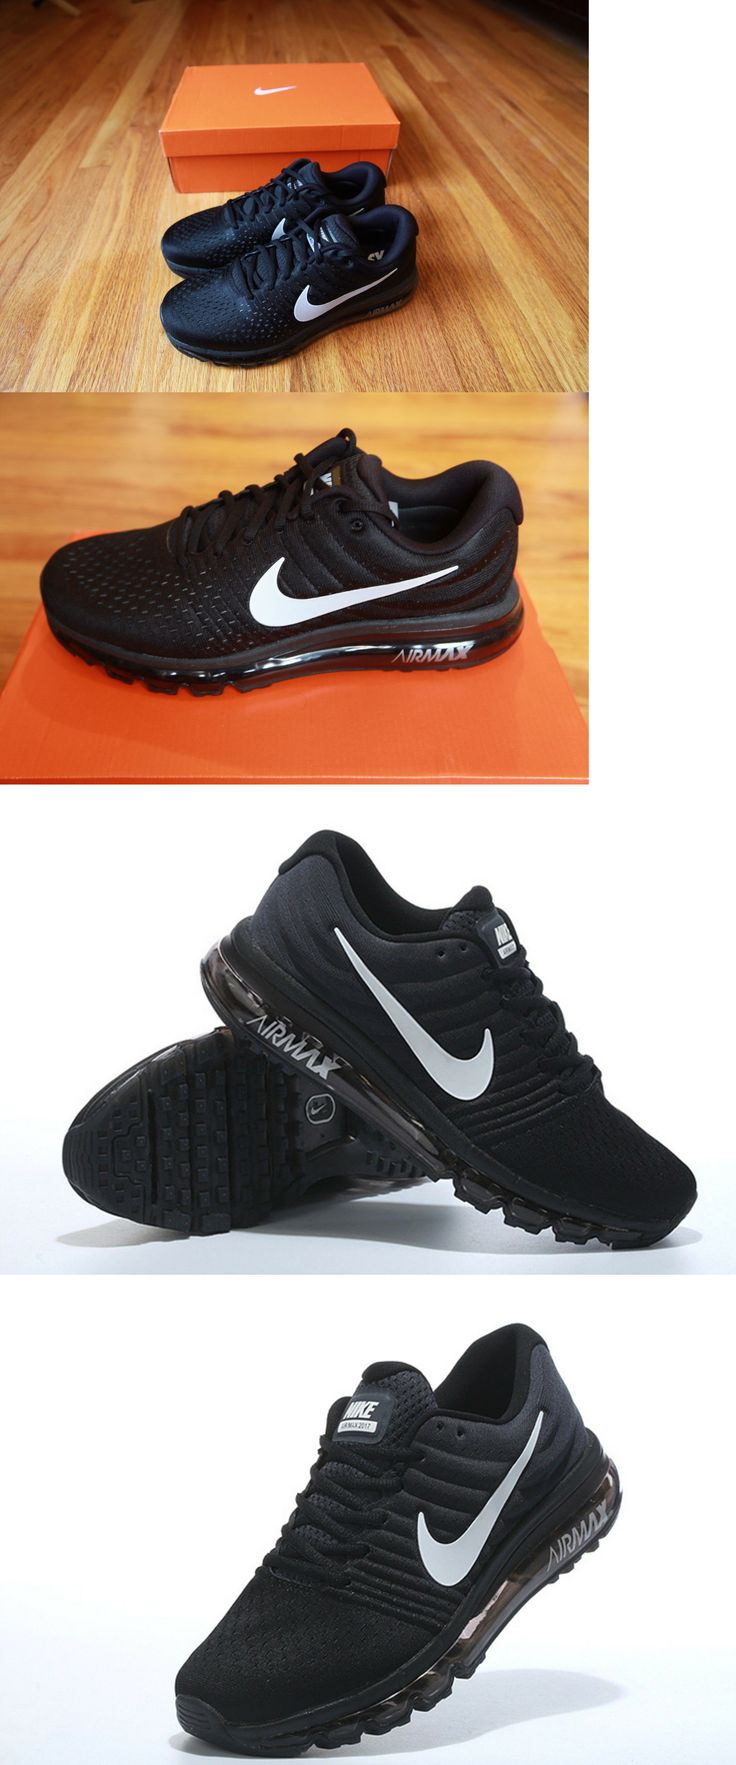 the best attitude df8e8 d595f ... clearance men shoes nike air max 2017 black men s running shoes  sneakers size 10.5 e7c59